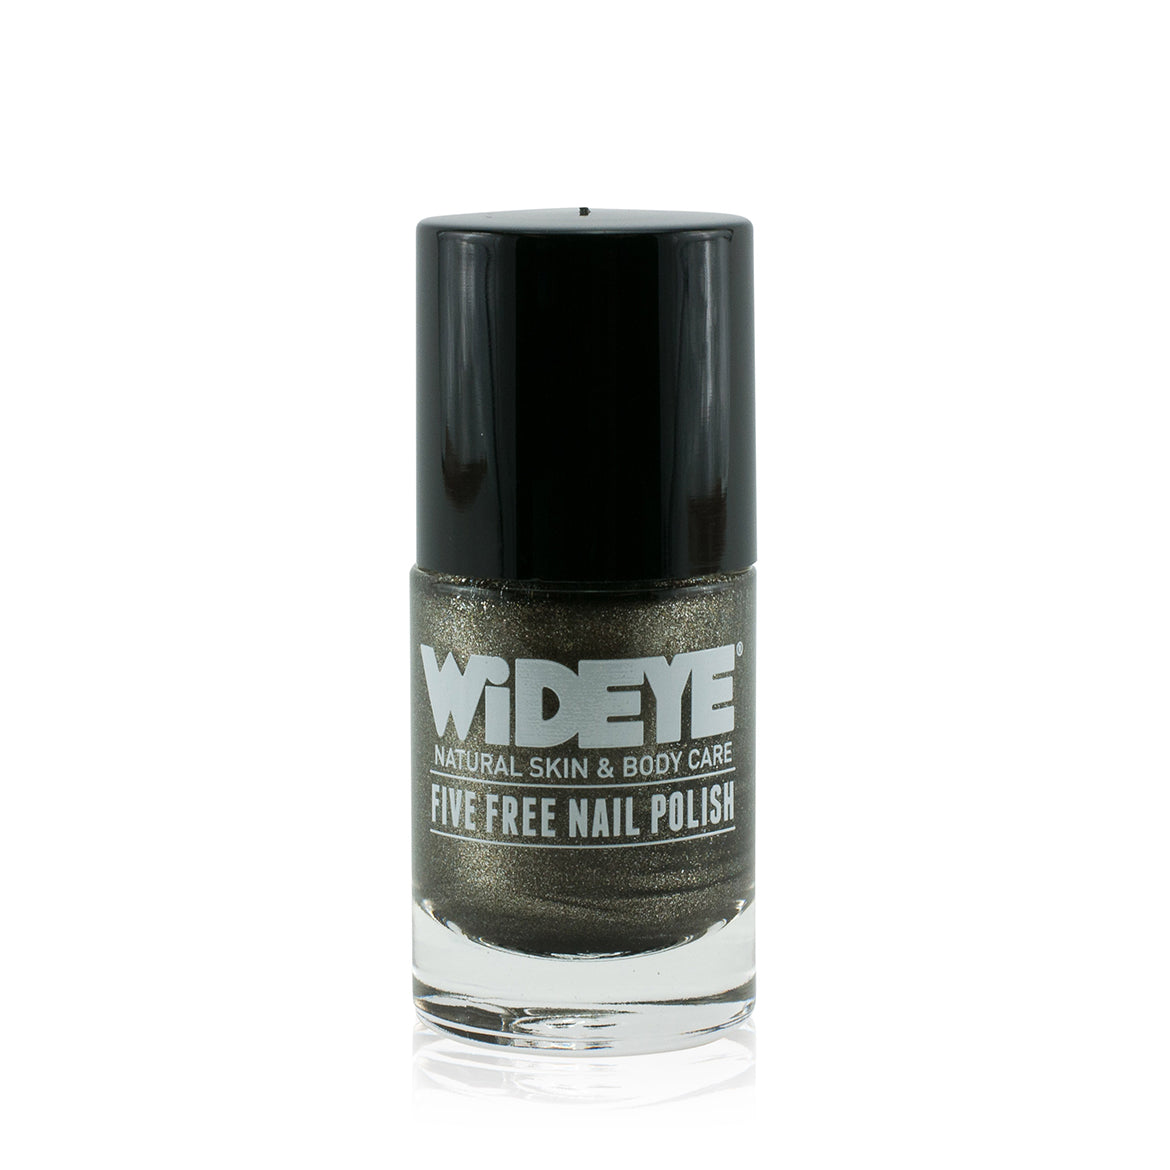 Pewter grey with shimmer nail varnish in glass bottle by WiDEYE.